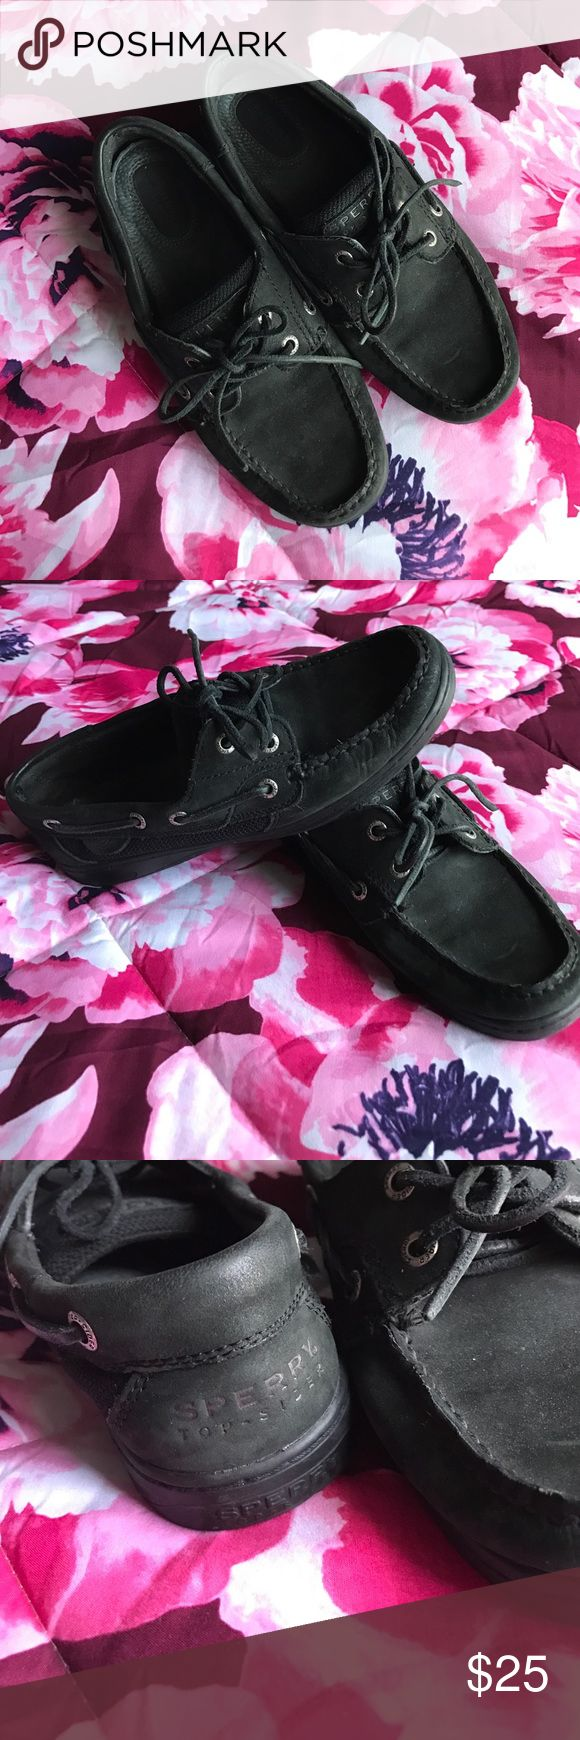 Authentic all black Sperry's Barely worn good condition all black Sperrys Sperry Top-Sider Shoes Flats & Loafers